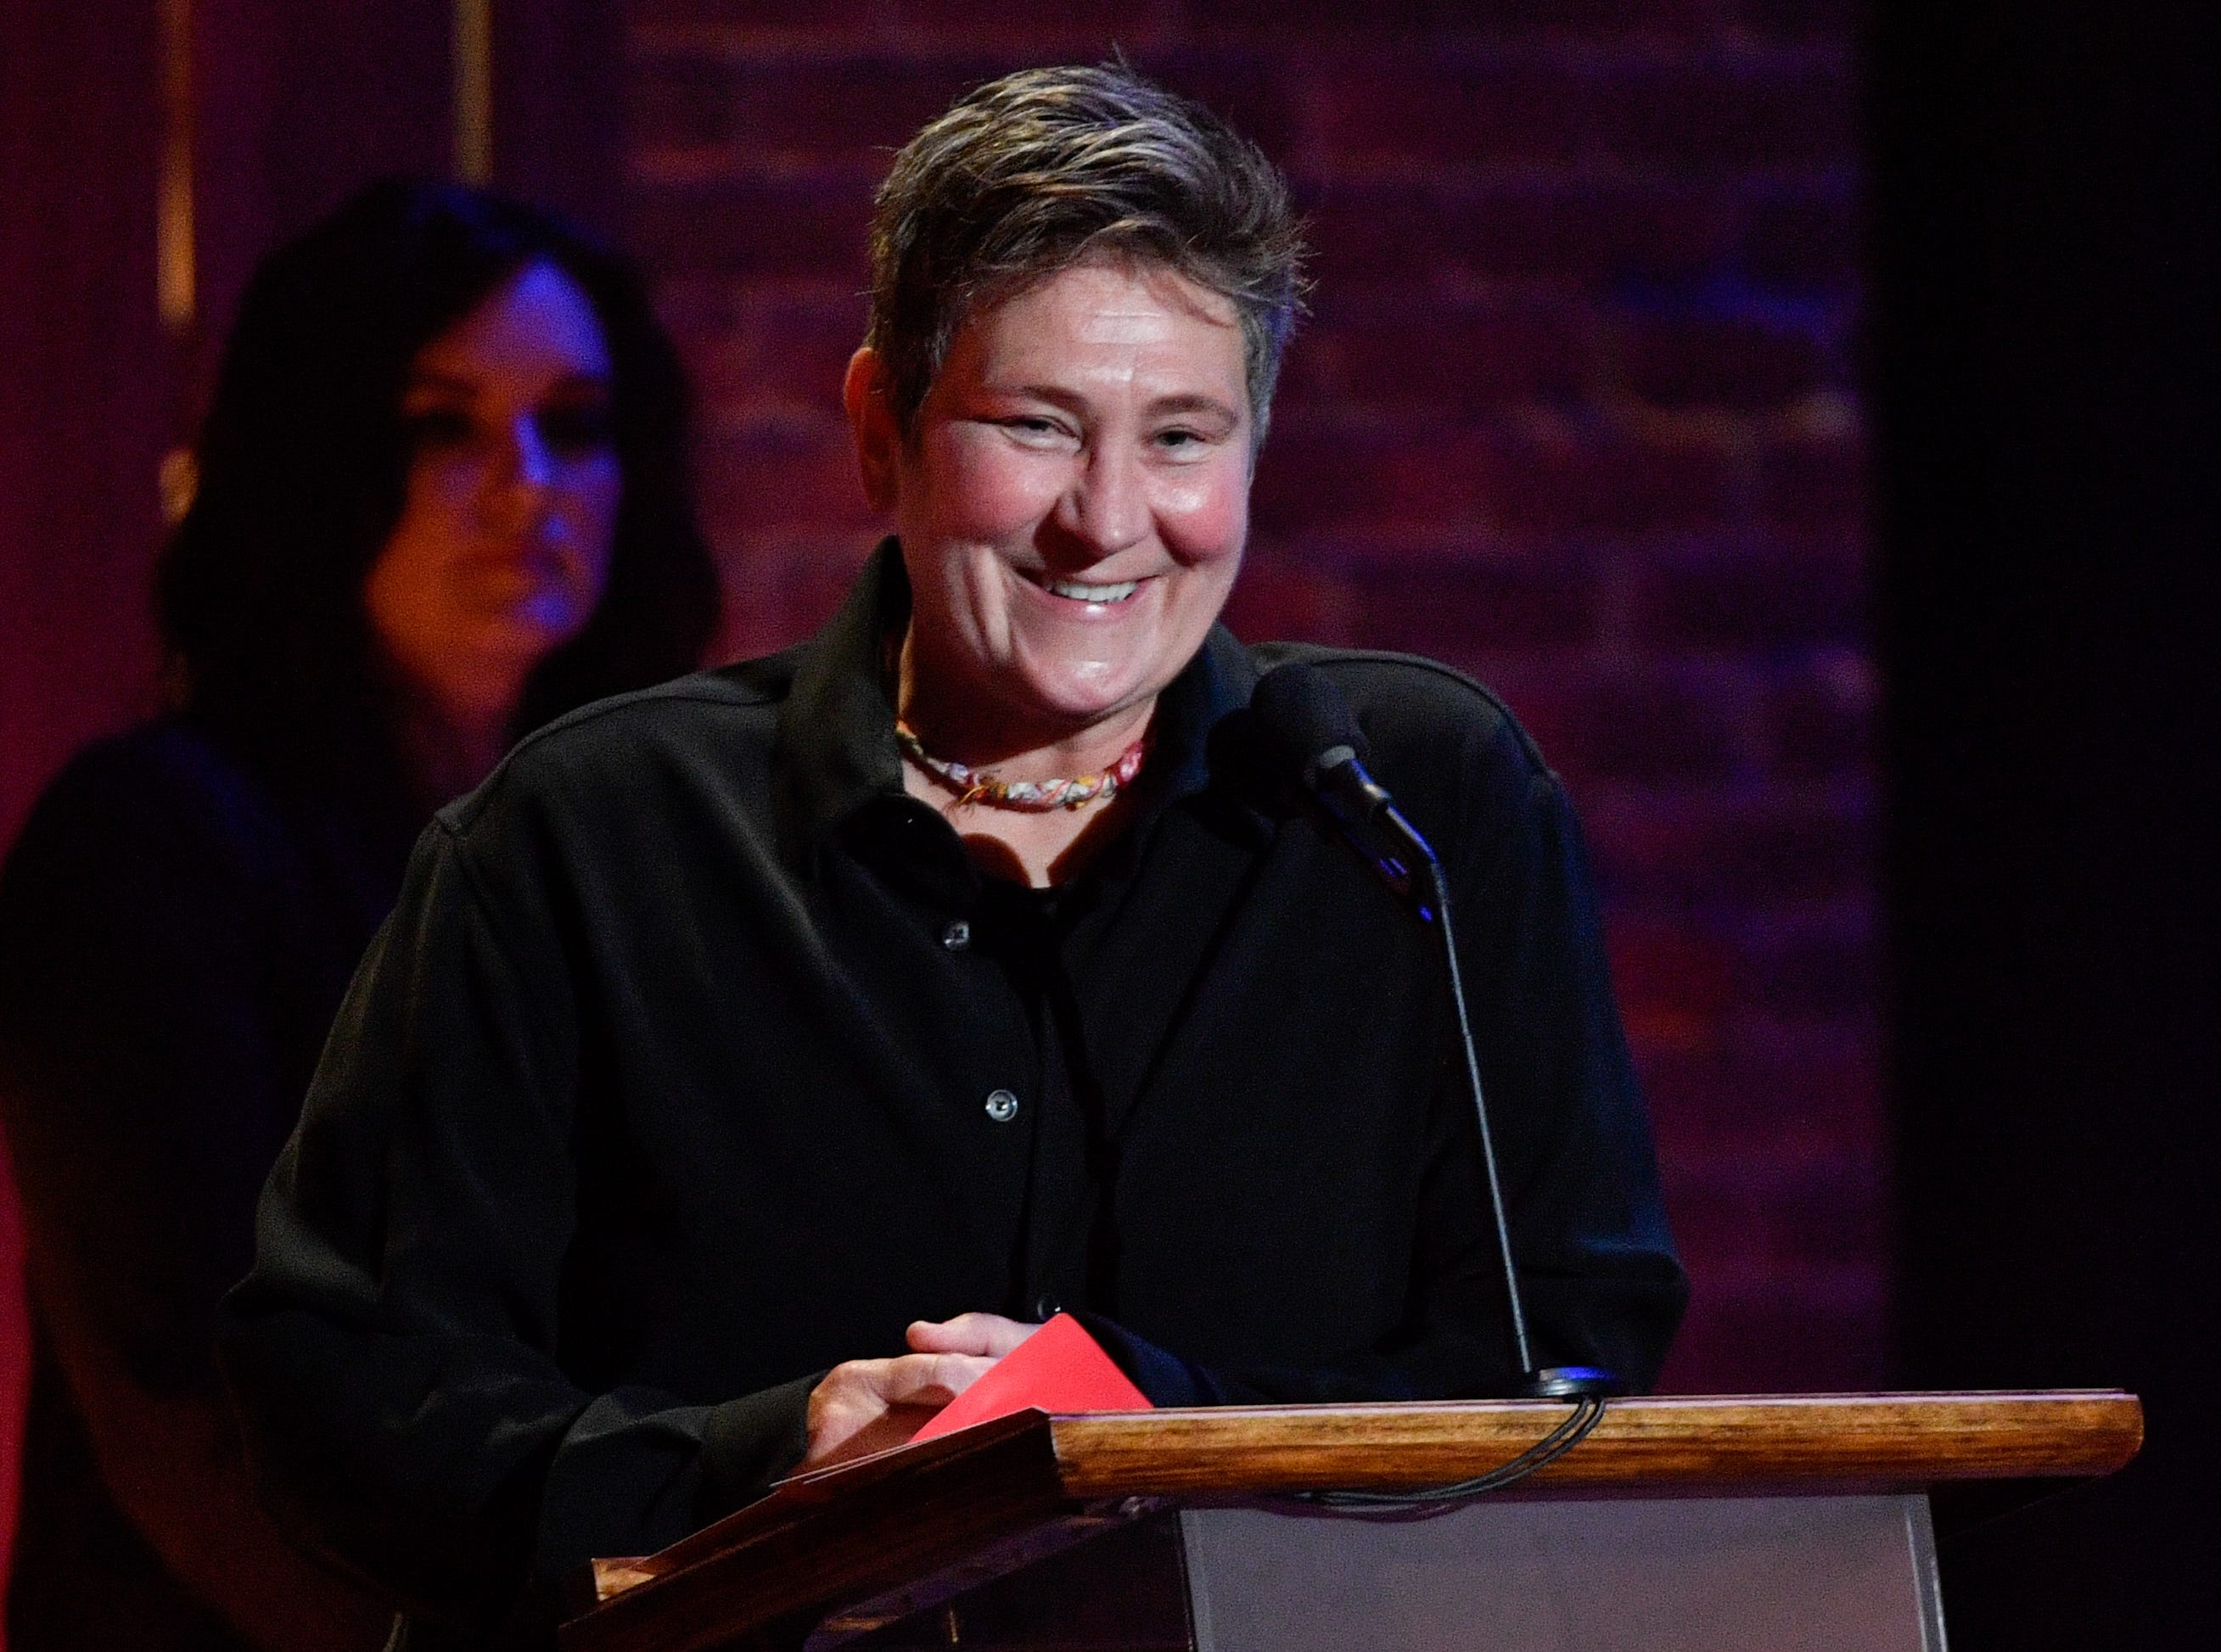 KD Lang accepts the Trailblazer award during the 2018 Americana Honors and Awards show at the Ryman Auditorium in Nashville, Tenn., Wednesday, Sept. 12, 2018.